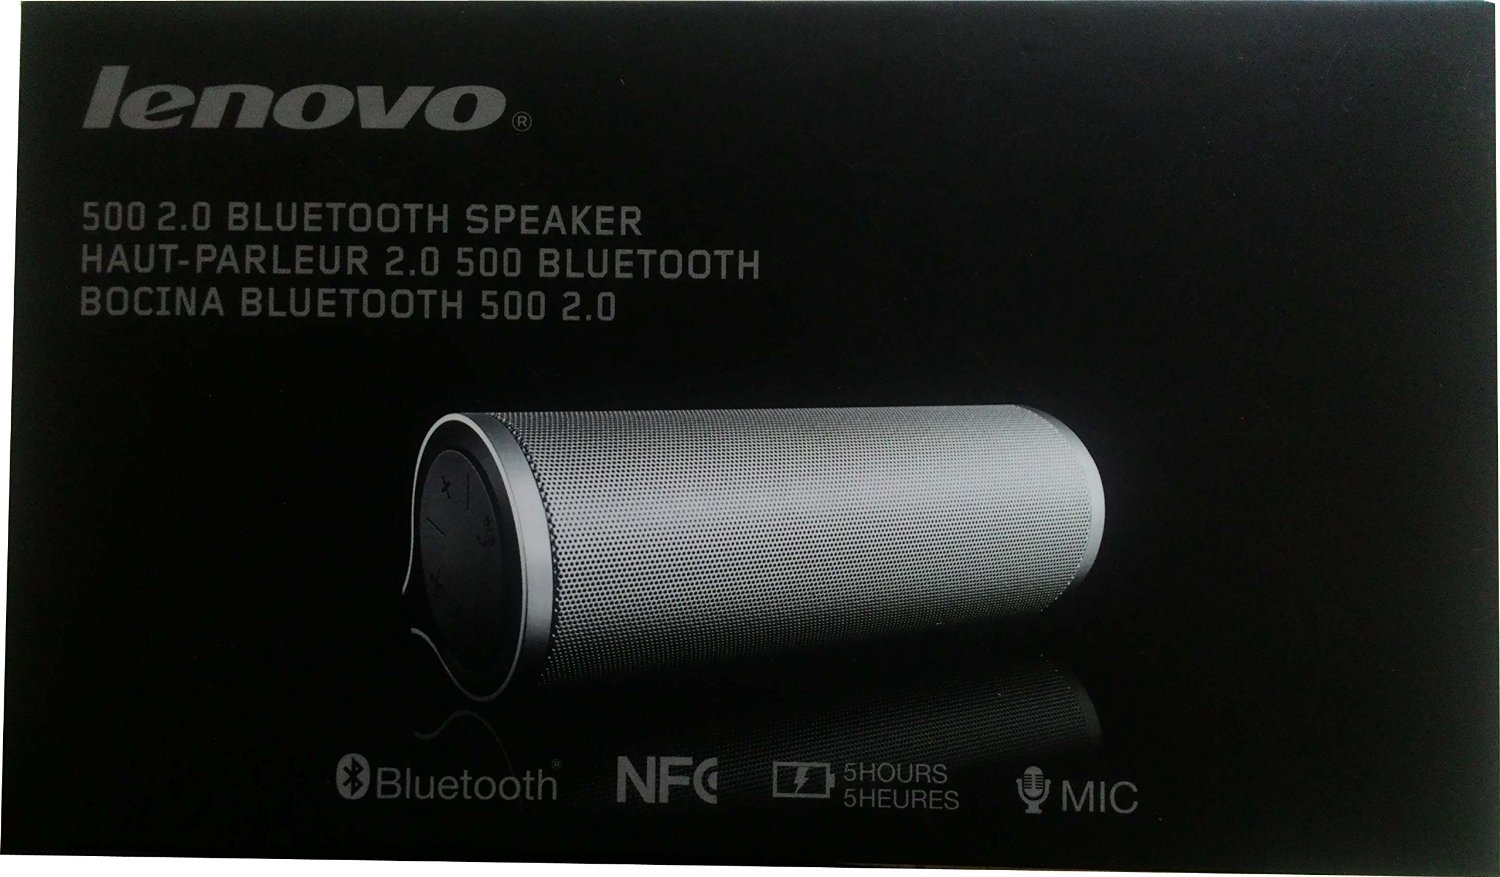 Lenovo 500 2.0 Wireless Speaker